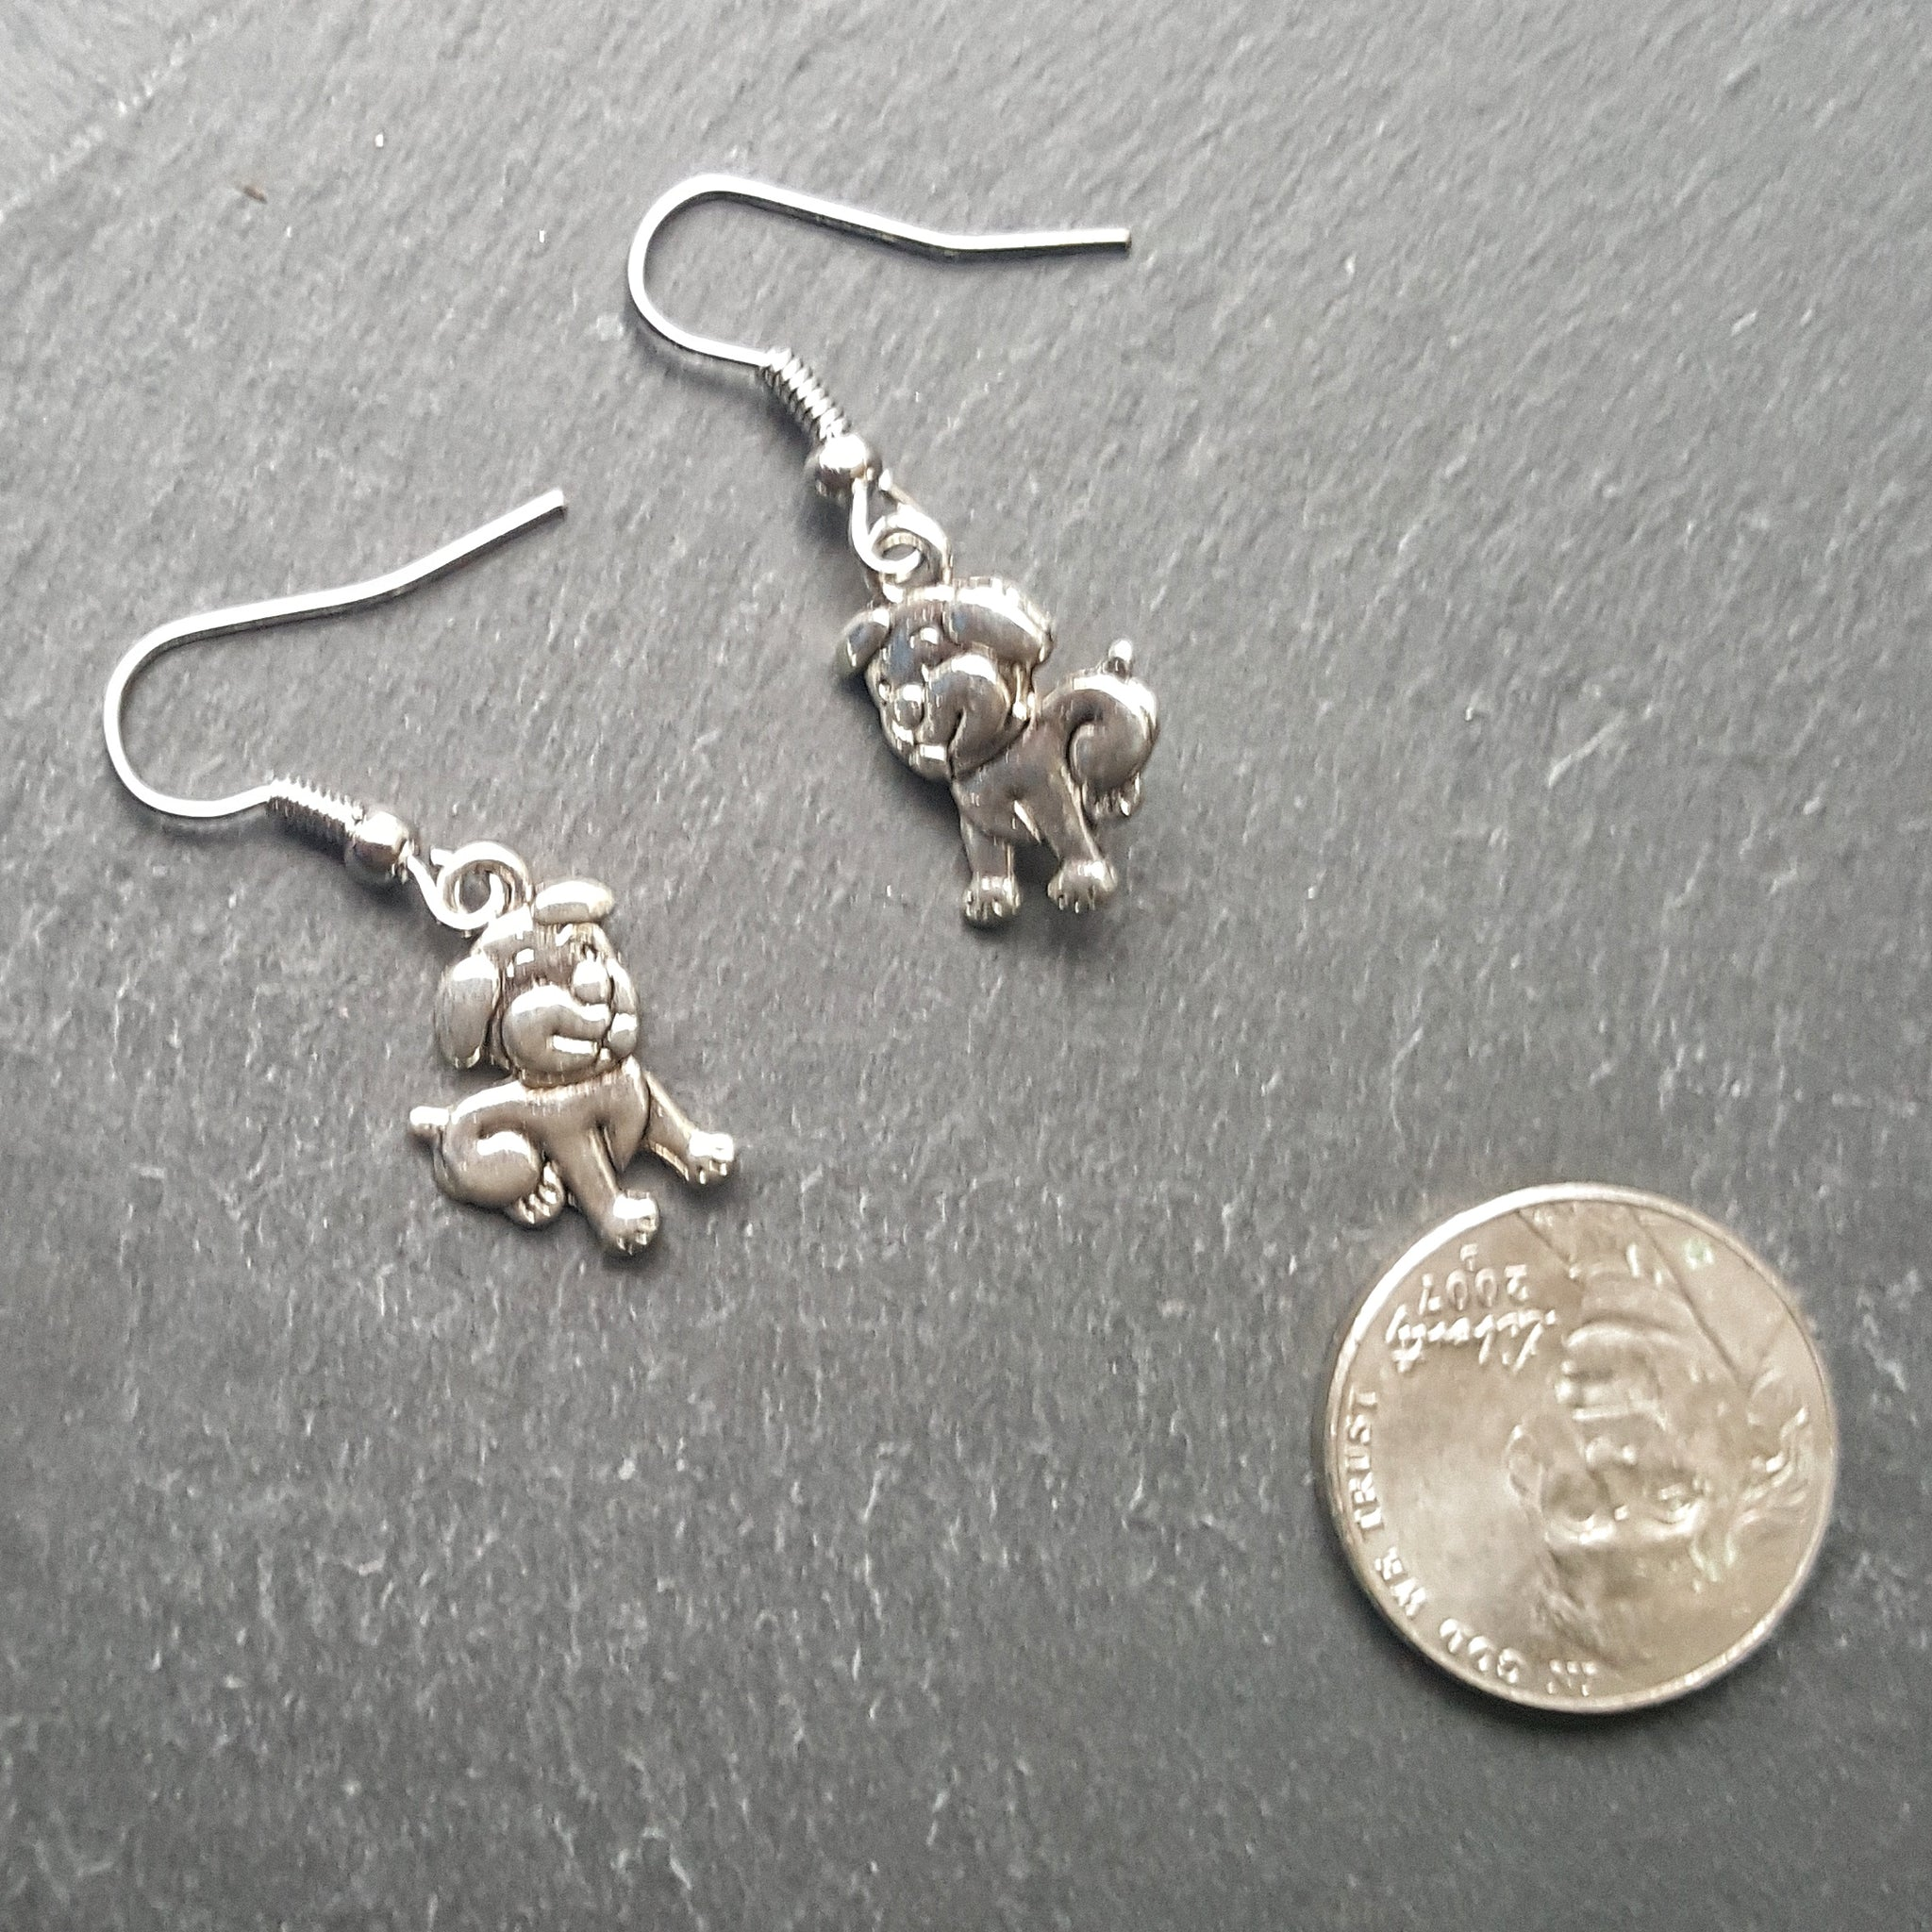 Silver Puppy Dog Earrings Dog Lover Gift - Handmade Jewelry - Ren Faire - DRAVYNMOOR